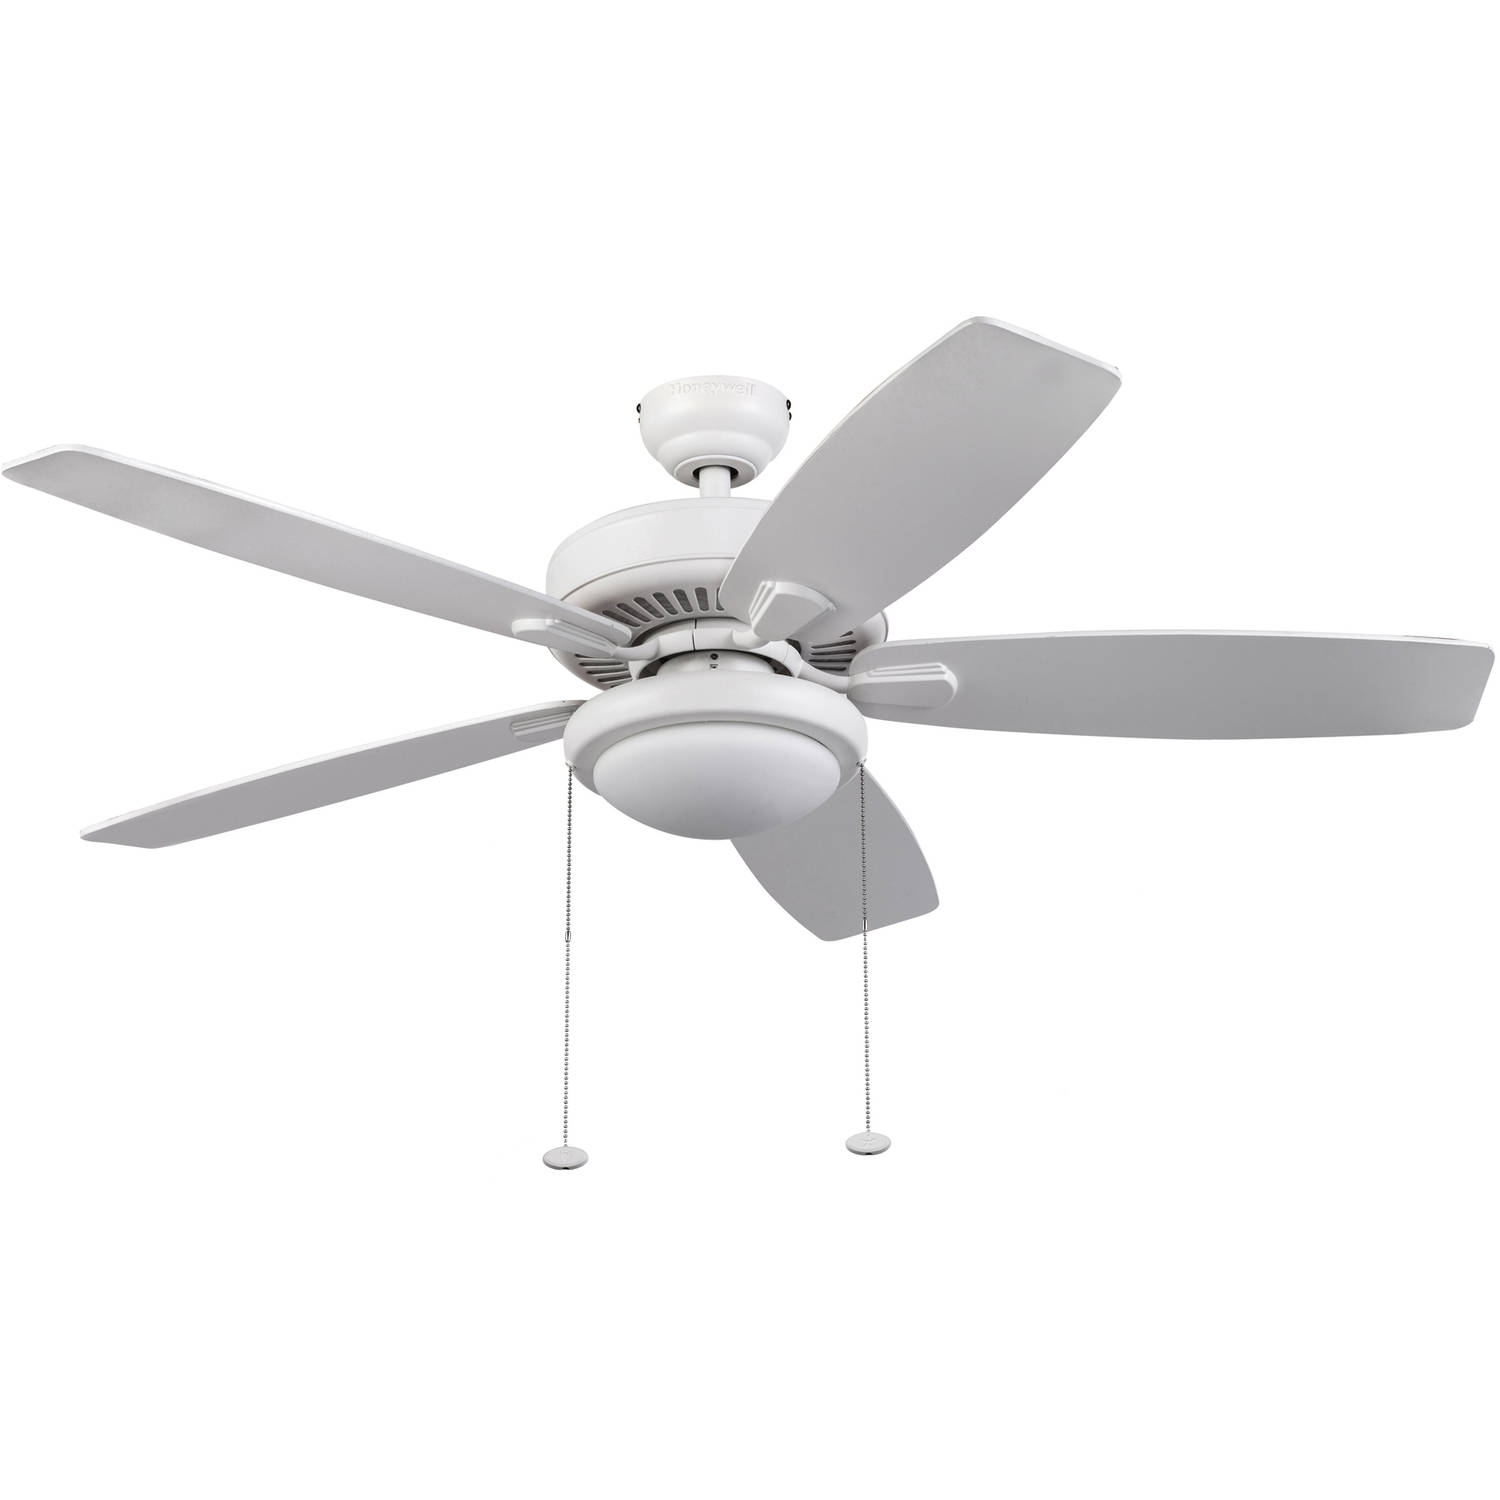 Uncategorized : Outdoor Ceiling Fans With Light In Nice Ceiling For Outdoor Ceiling Fans With Lights At Walmart (#14 of 15)